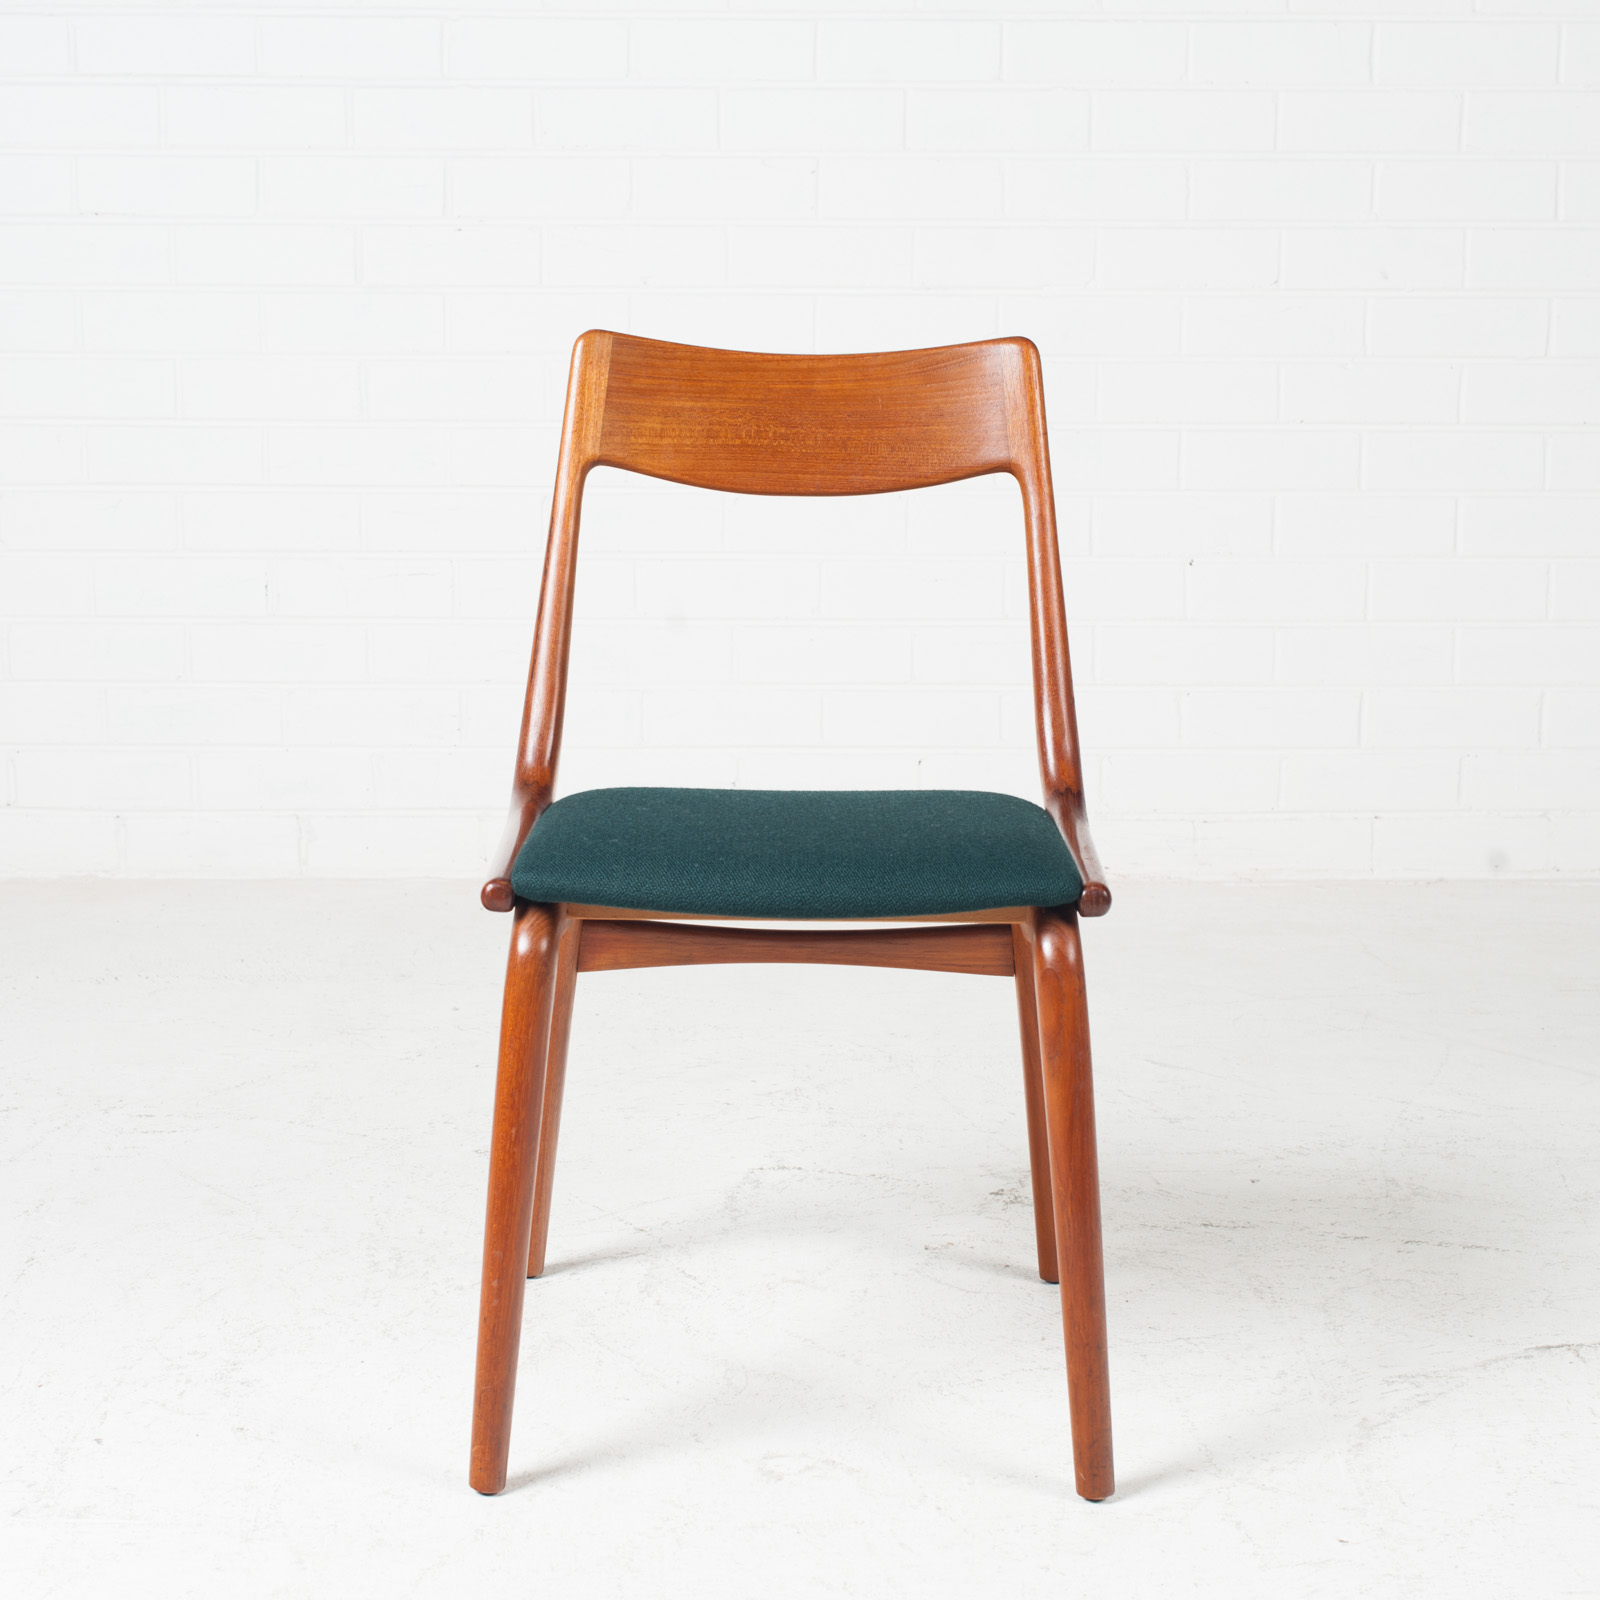 Set Of 6 Model 370 'boomerang' Dining Chair By Alfred Christensen In Teak For Slagelse Mobelfabrik 1950s Denmark 01